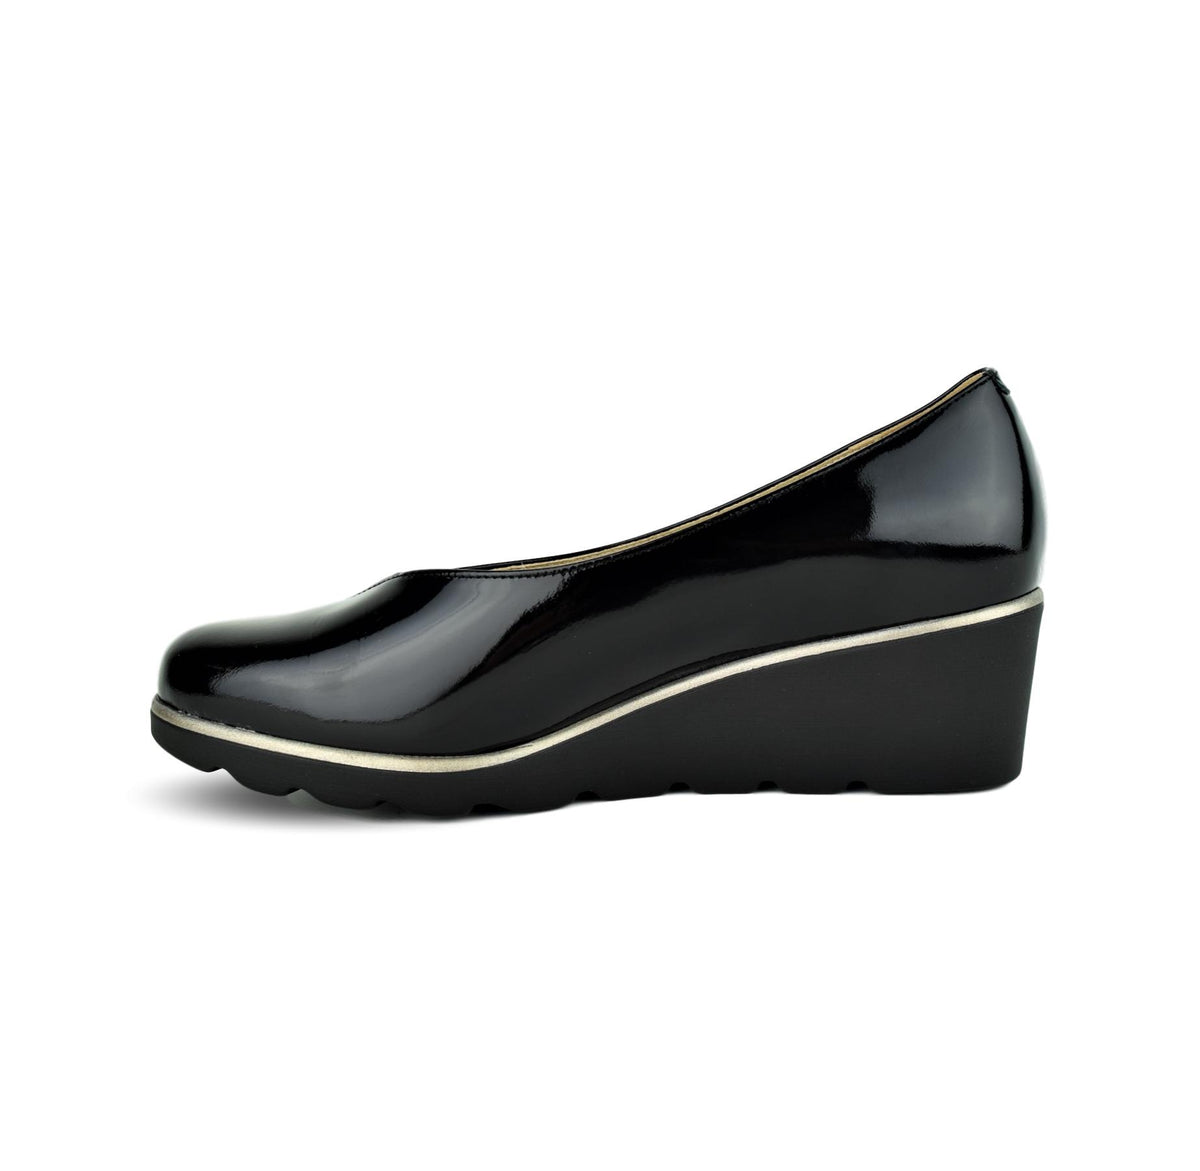 MARINA - Dchicas Closed Wedge Black Patent